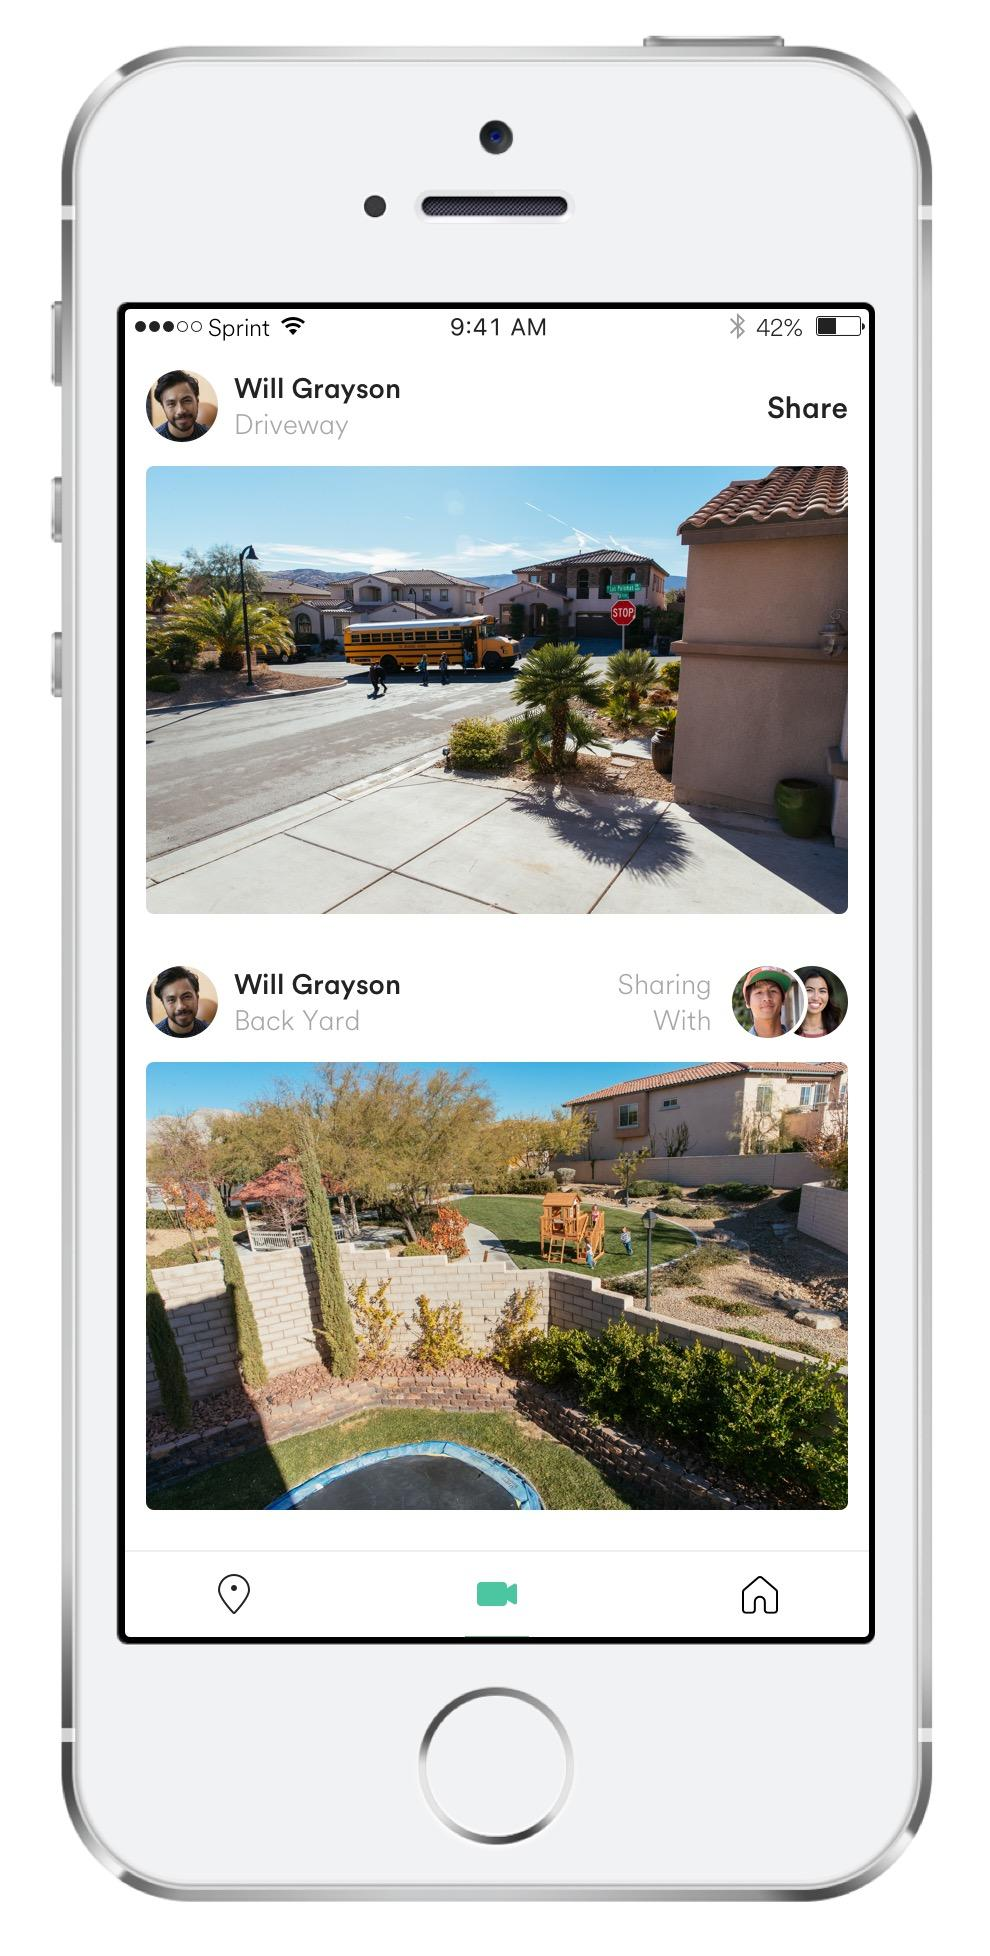 Vivint Streety is a neighborhood watch app of shared cameras